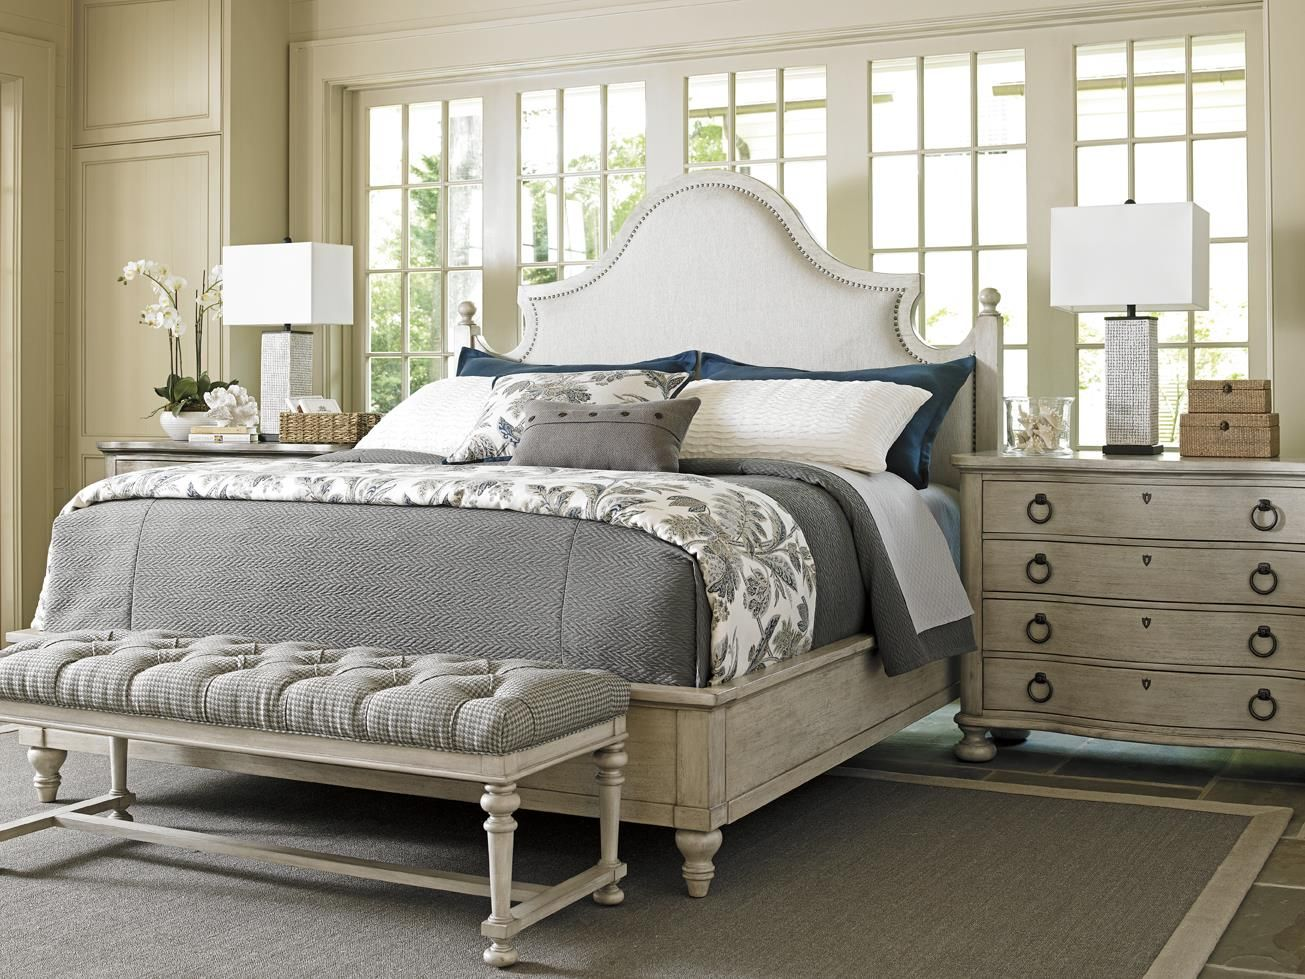 Lexington Bedroom Sets Endearing Lexington Oyster Bay Queen Bedroom Group  Baer's Furniture Decorating Design